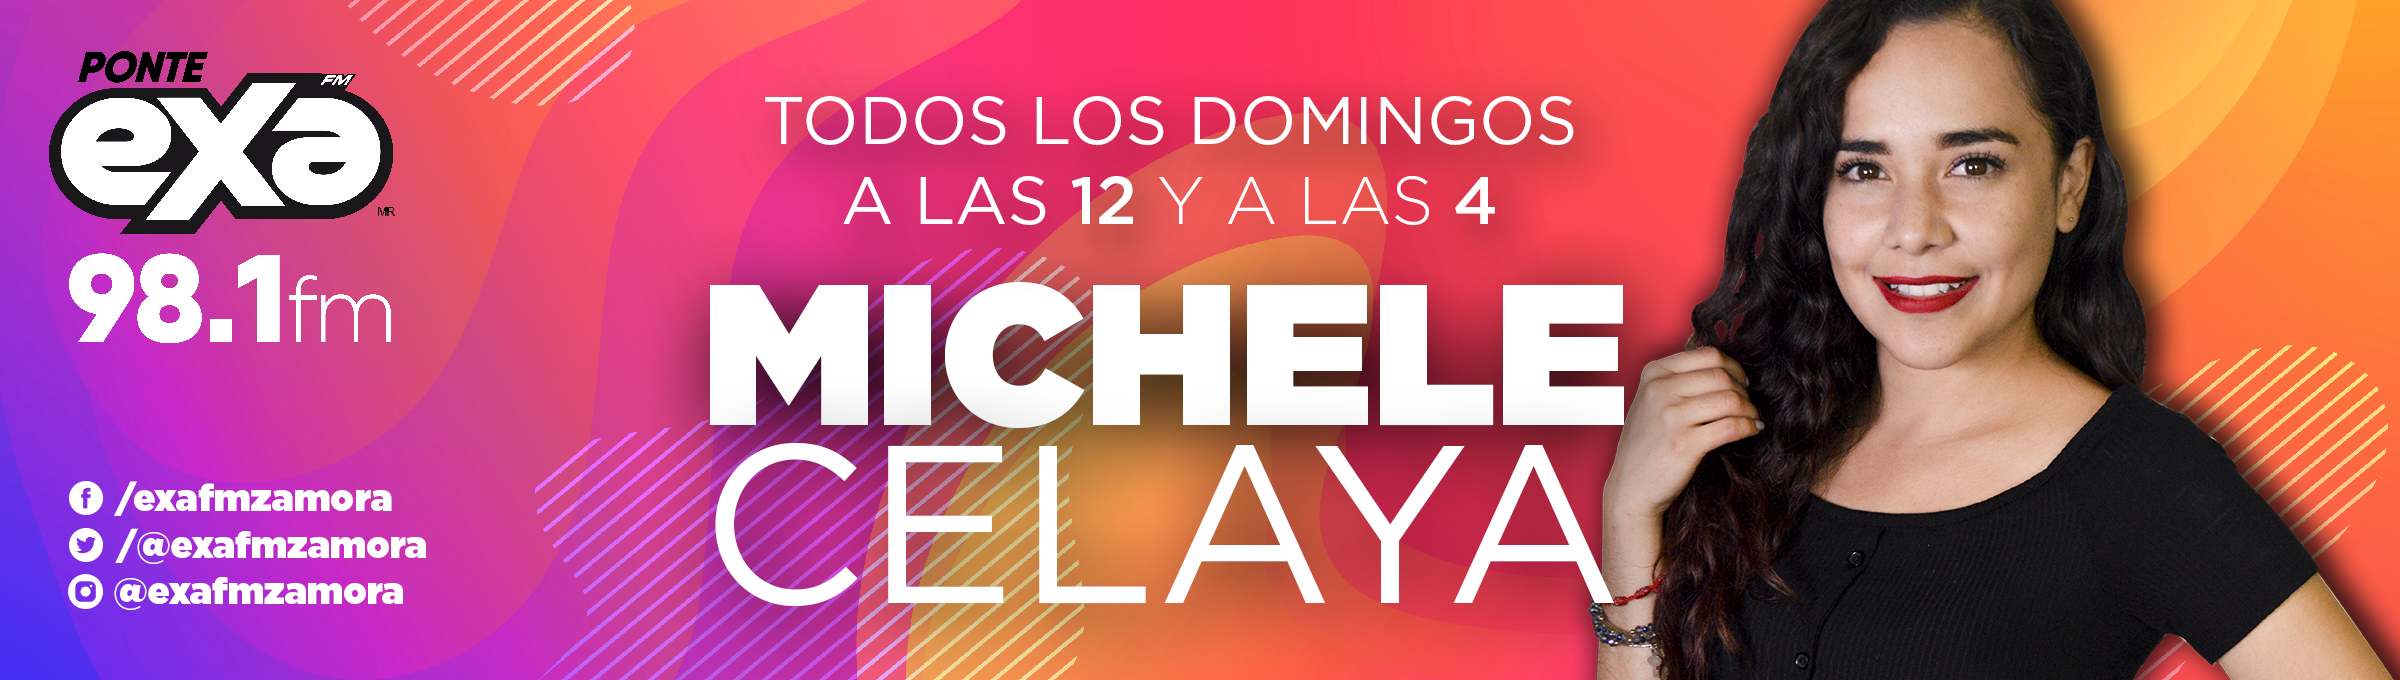 Banner Michele Celaya 2400 x 680 px.png